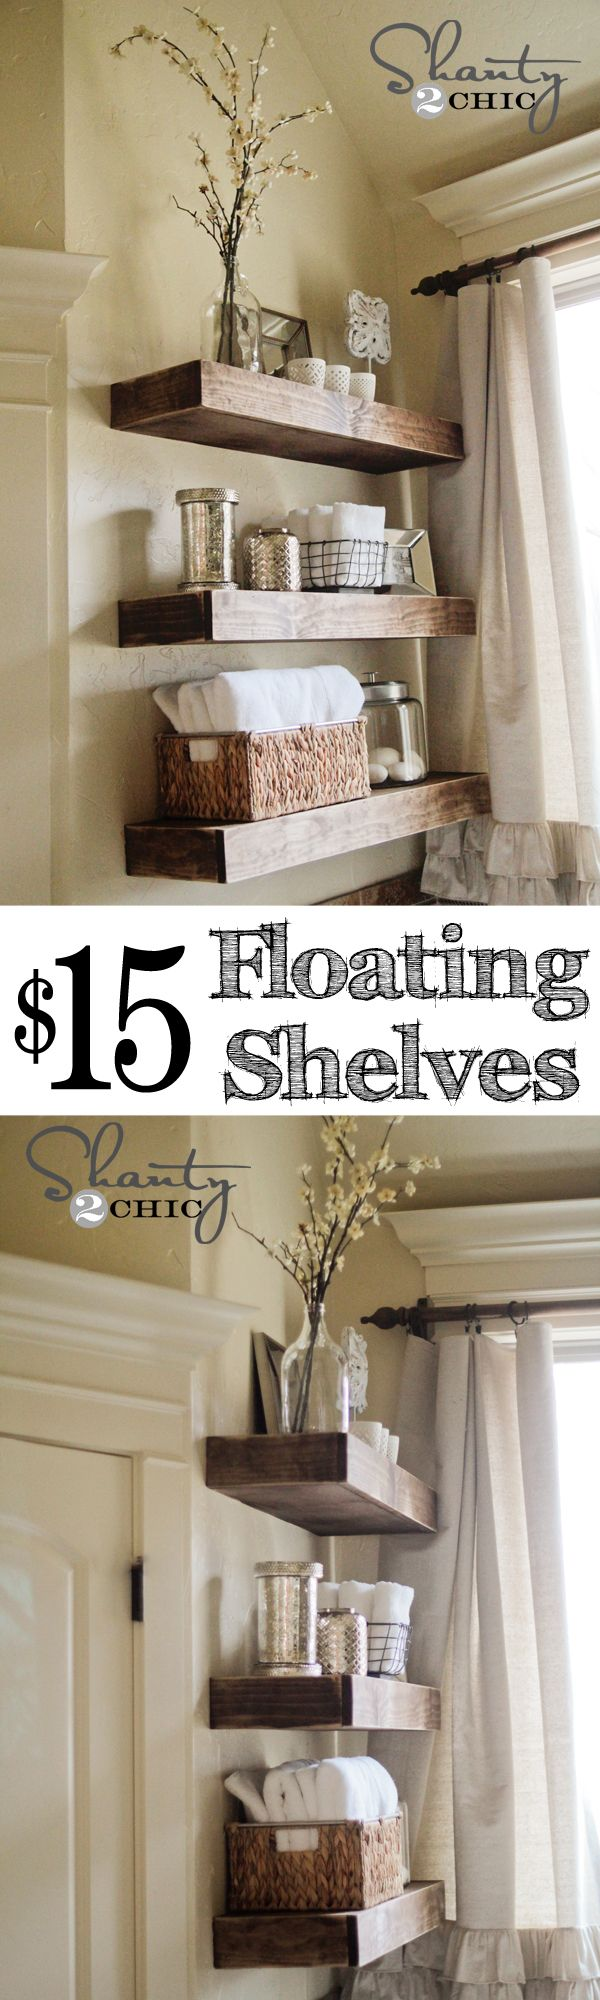 DIY Floating Shelves for $15